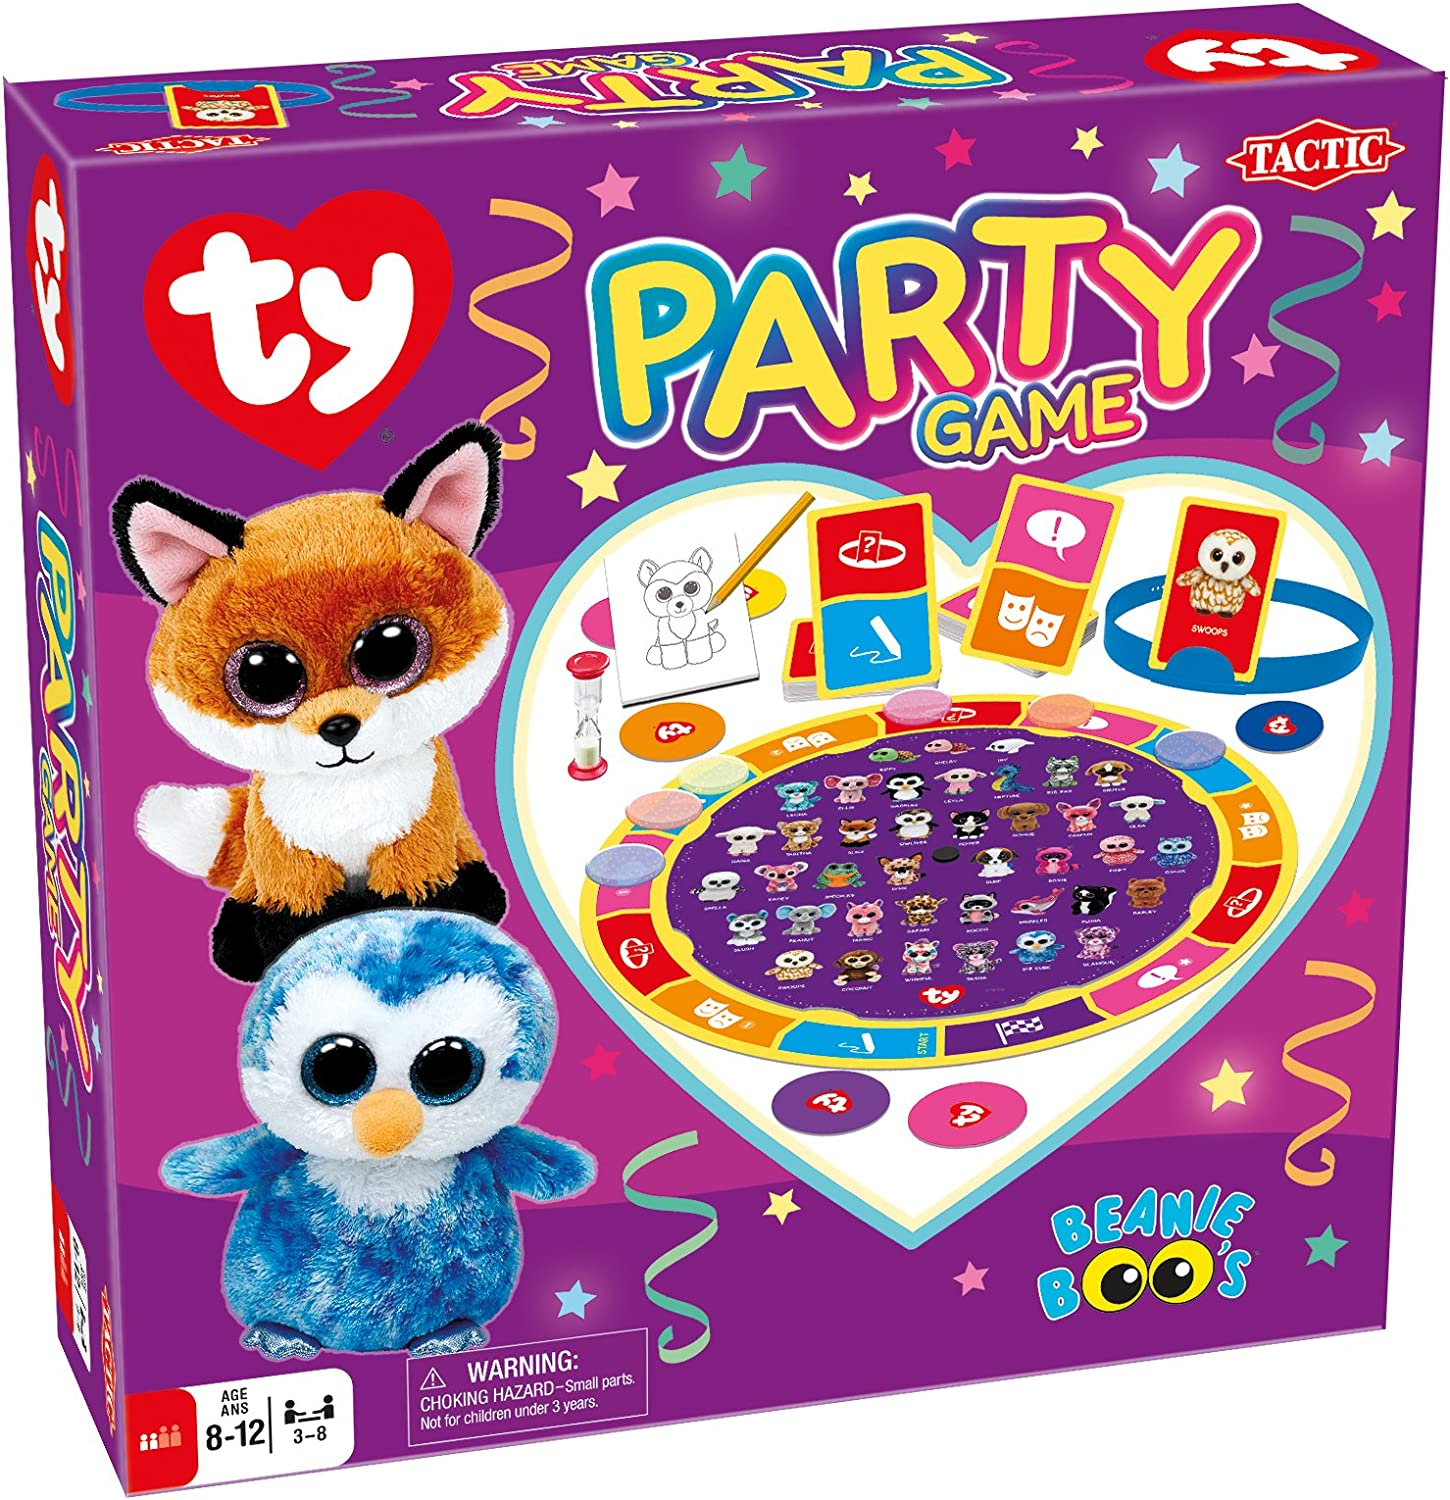 Amazon.com: Tactic Games US Ty Party Board Game: Toys & Games